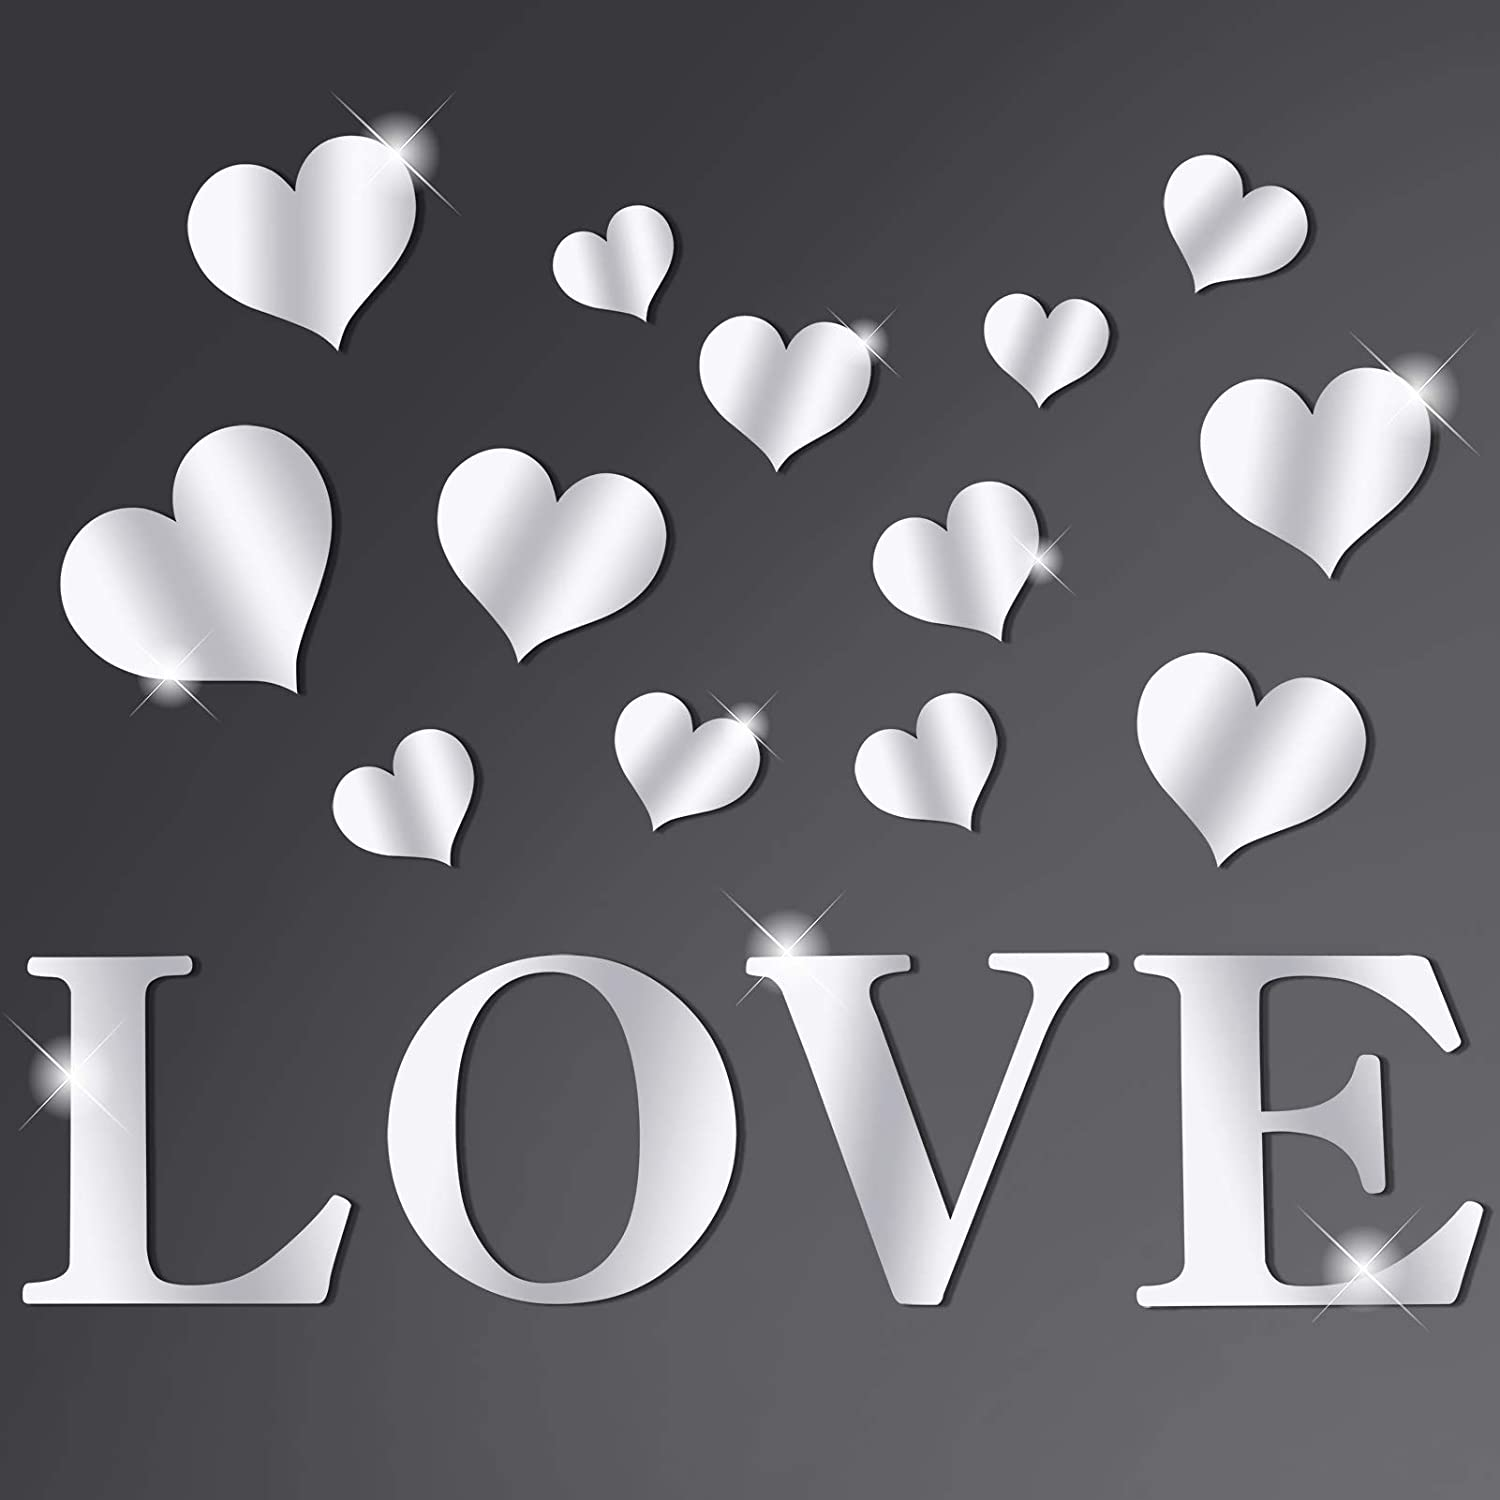 Sntieecr 17 PCS Love Letters and Hearts Shaped Acrylic Mirror Wall Stickers Crystal DIY Wall Decals Removable Mirror Surface Wall Stickers for Home Living Room Decoration (Silver)